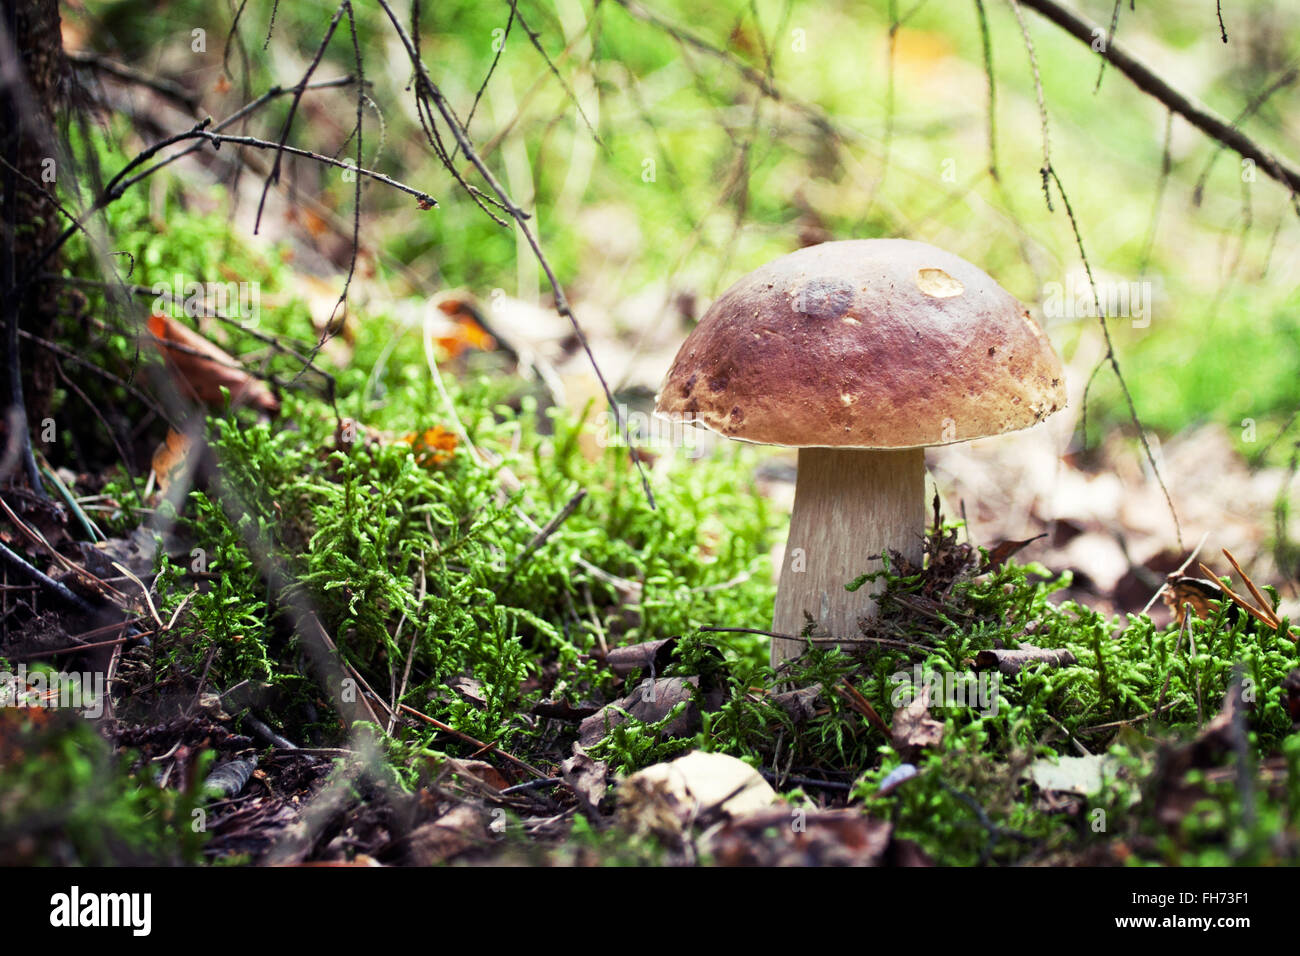 A very delicious and salubrious mushroom Porcini or Cep in it's natural habitat. - Stock Image